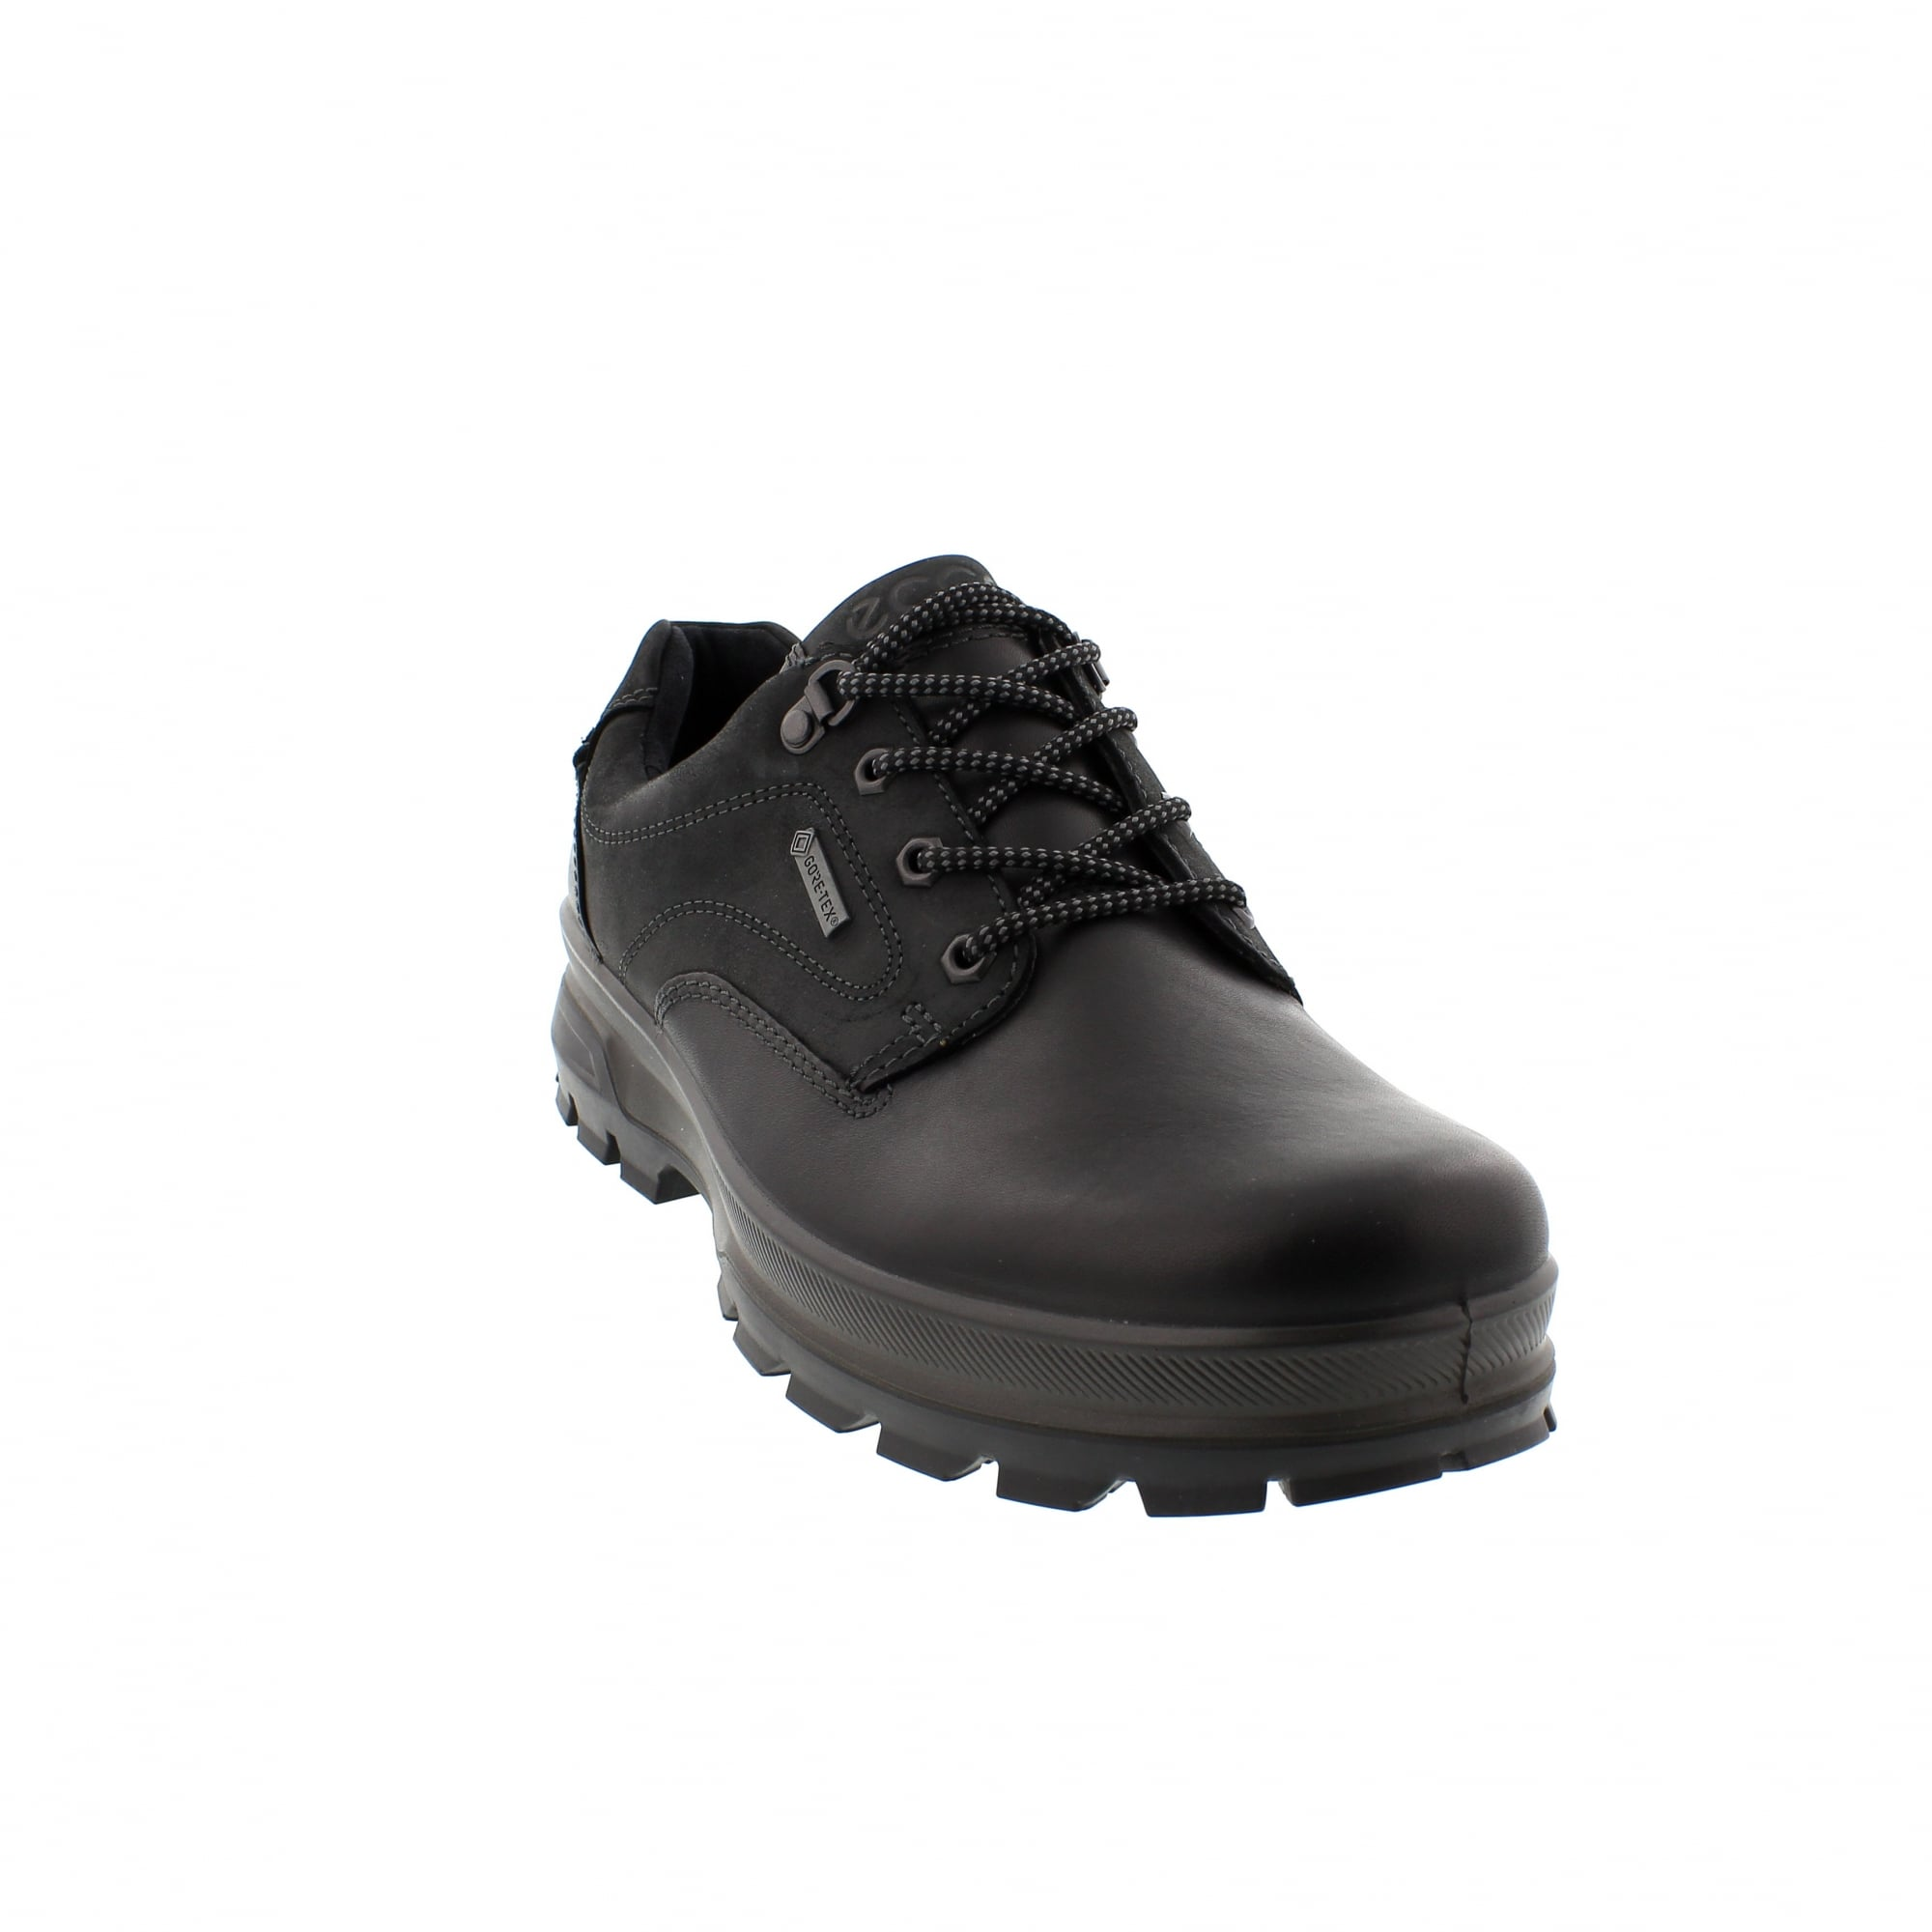 0cdbac5b5695e Ecco Rugged Track | 838034-51707 - Mens from Rogerson Shoes UK